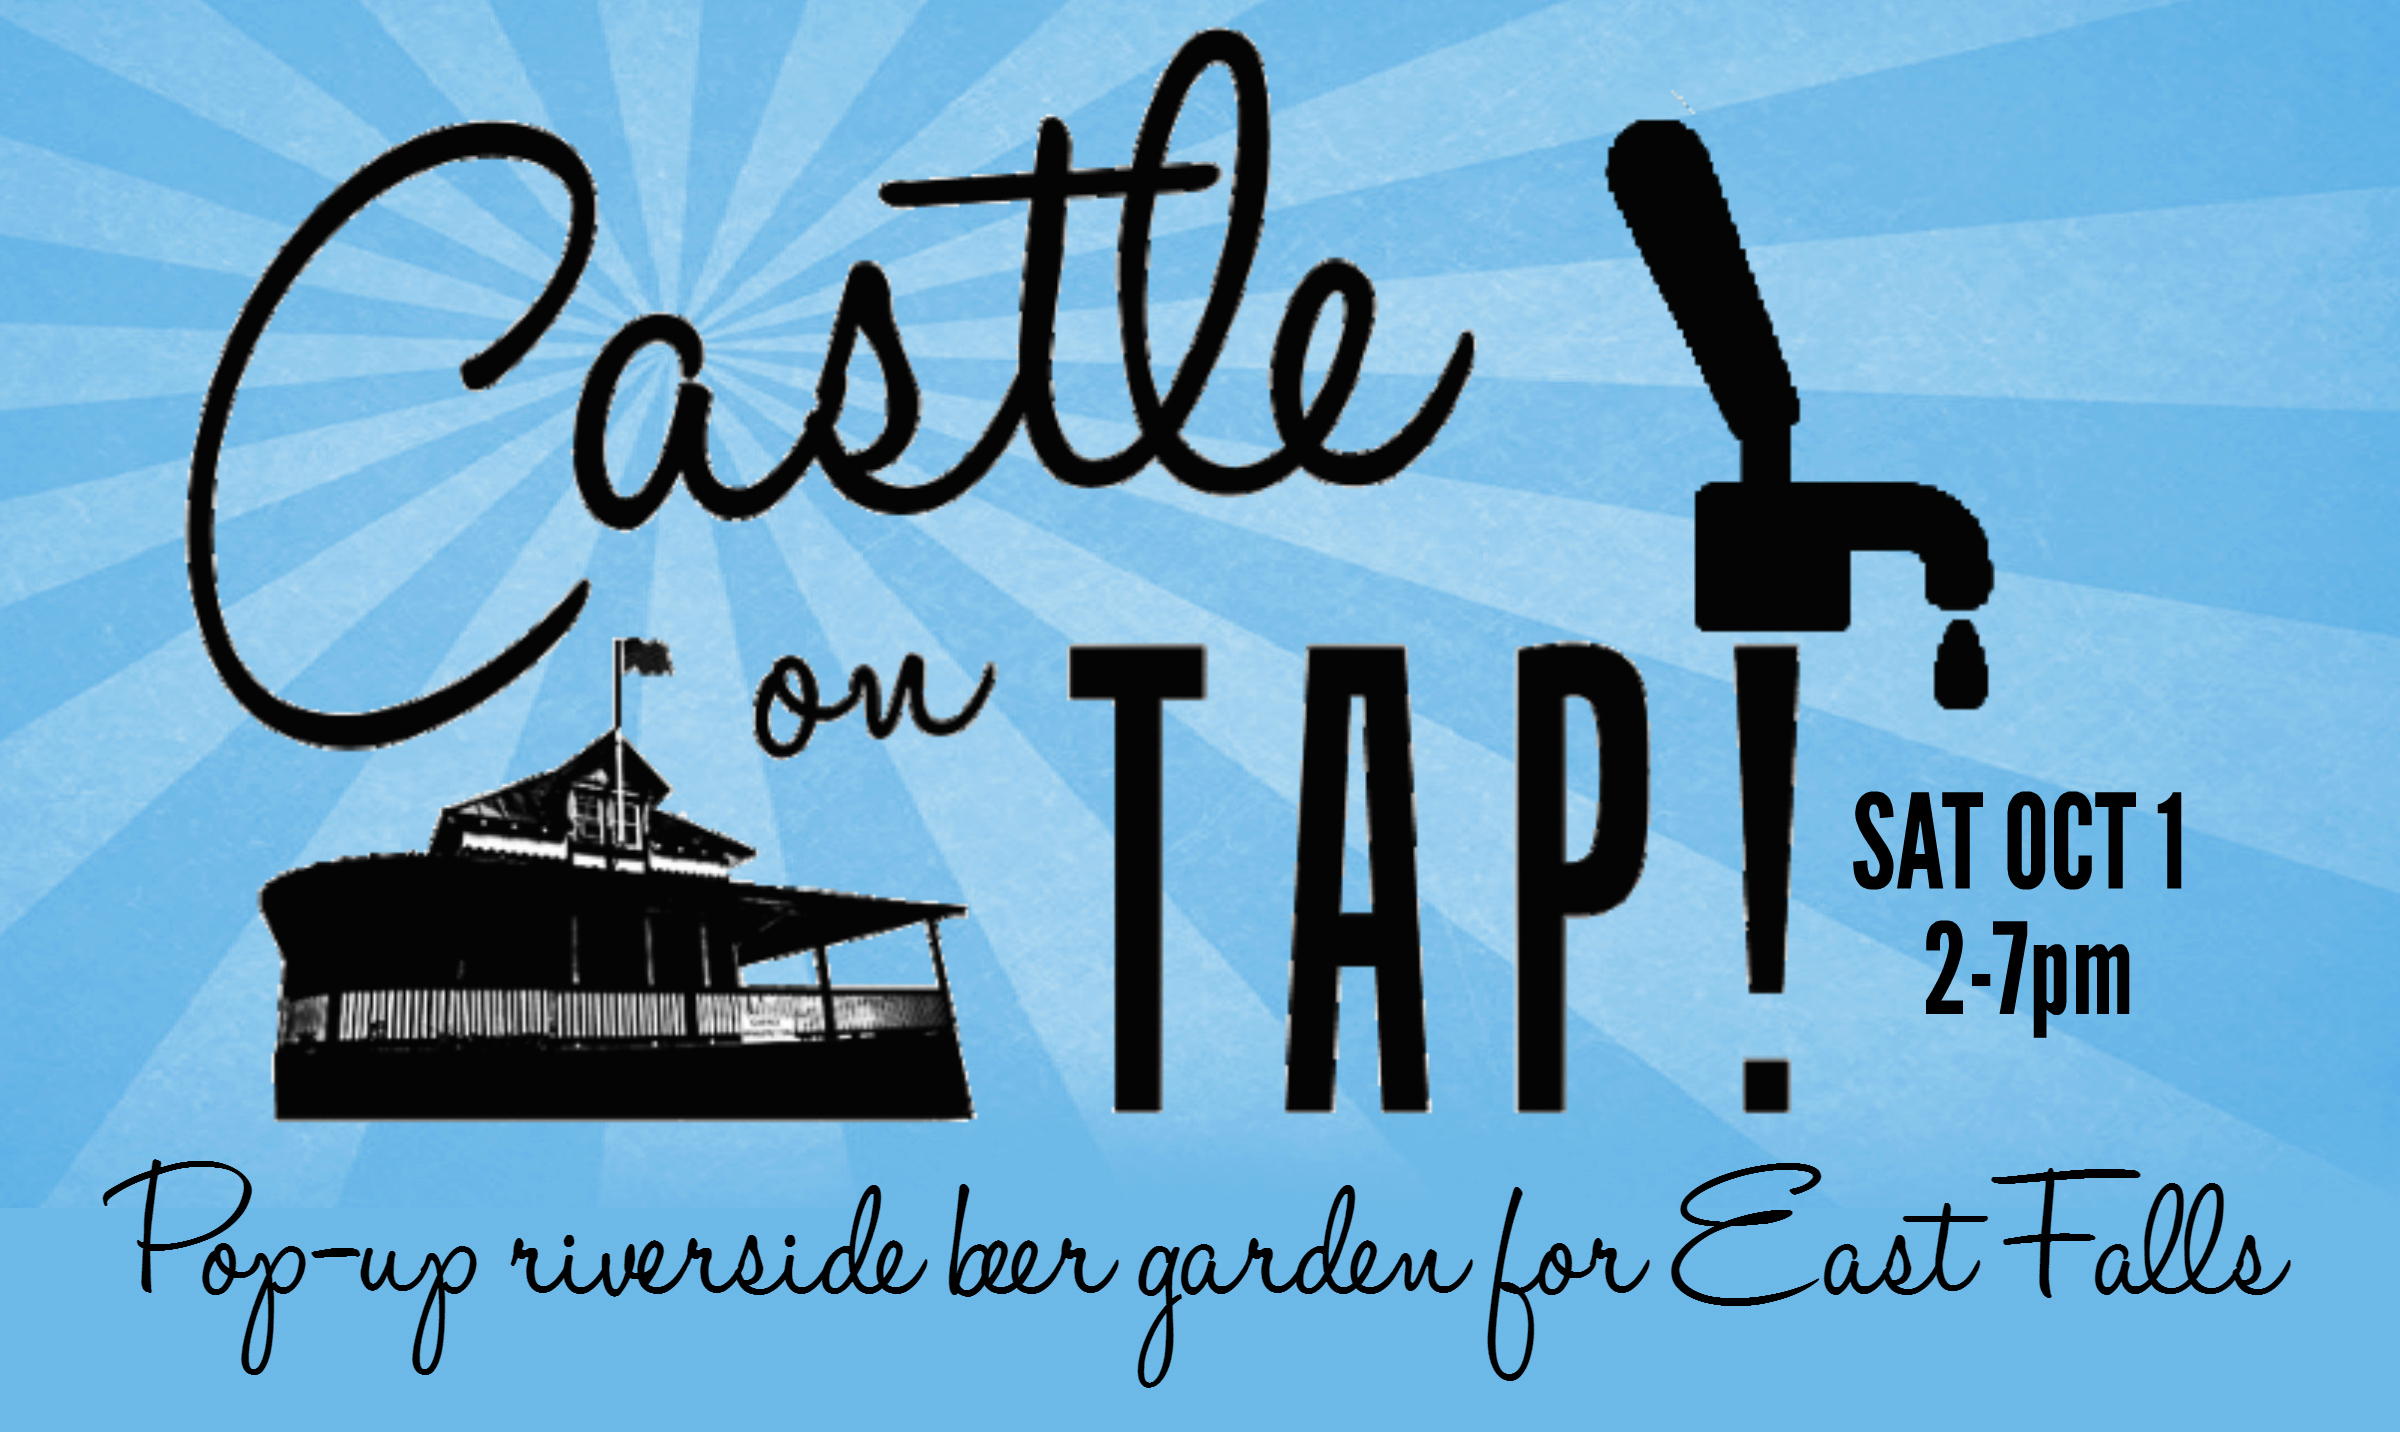 a-pop-up-beer-garden-for-east-falls-retro-background